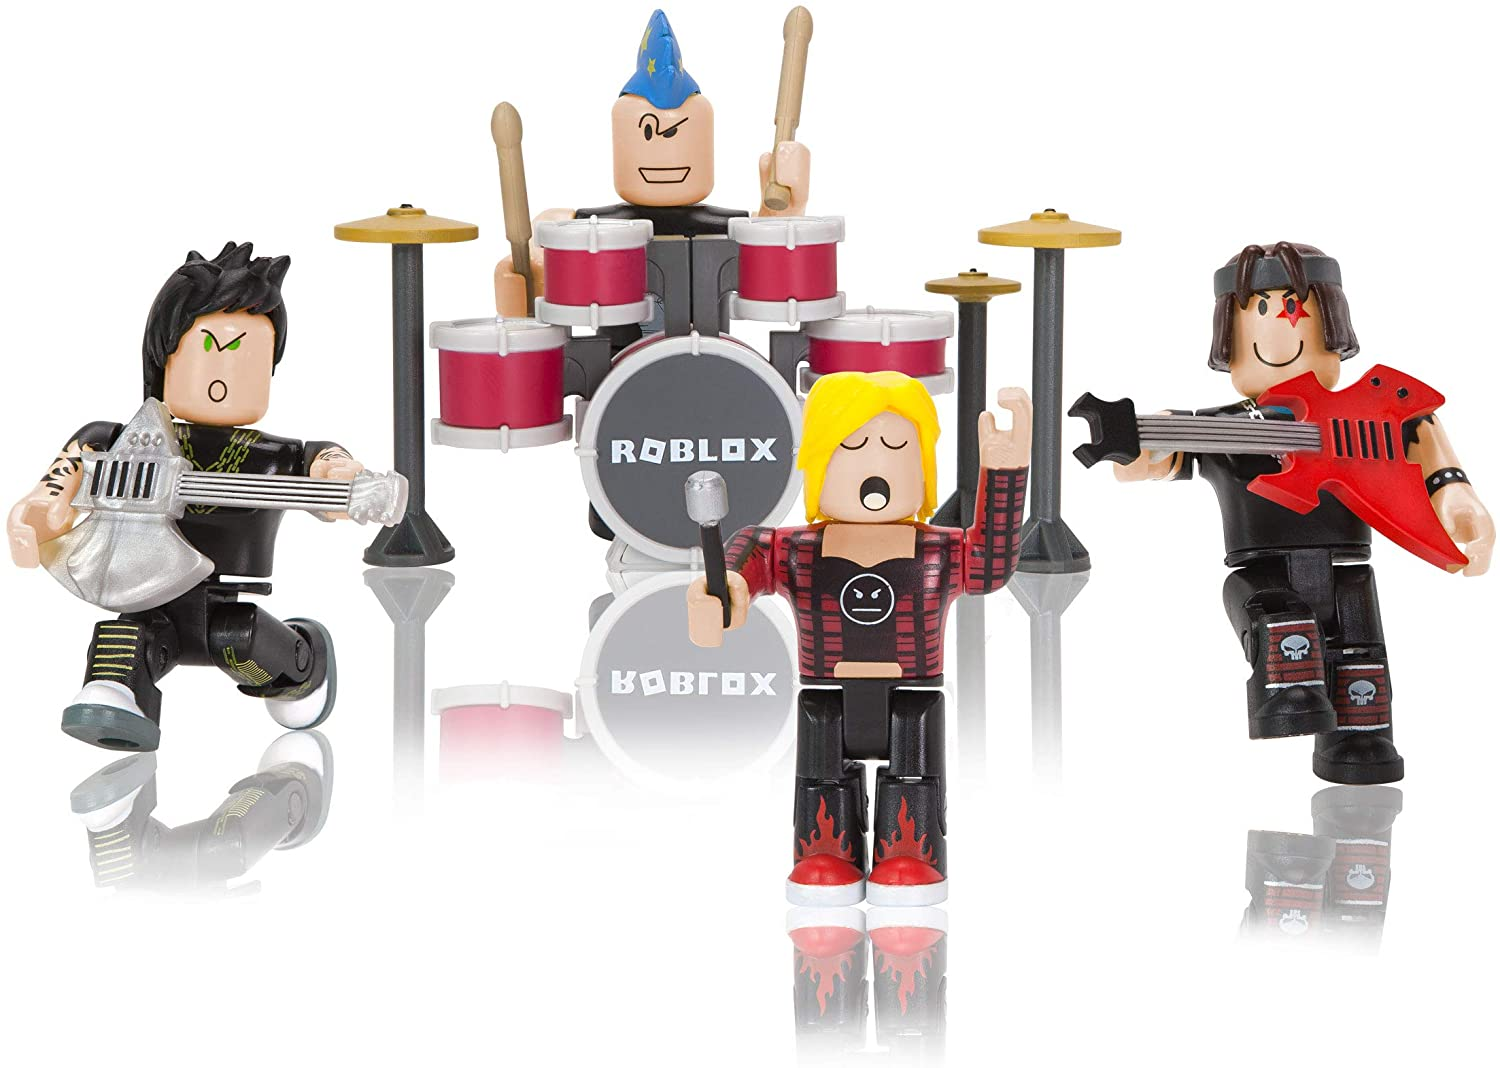 eleven s mall outfit roblox Amazon Com Roblox Action Collection Punk Rockers Four Figure Pack Includes Exclusive Virtual Item Toys Games